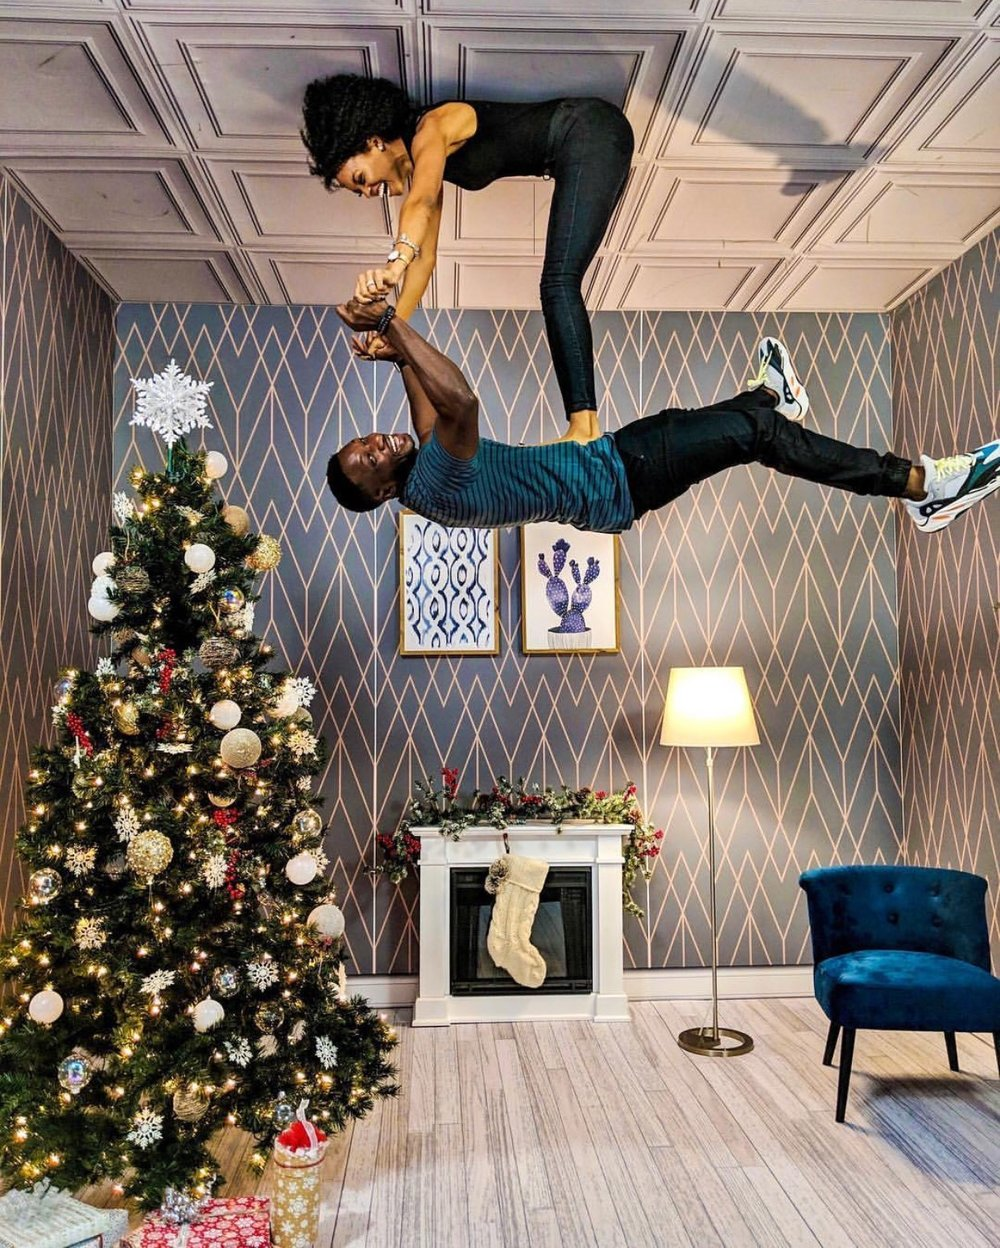 A couple poses in an upside down Christmas room